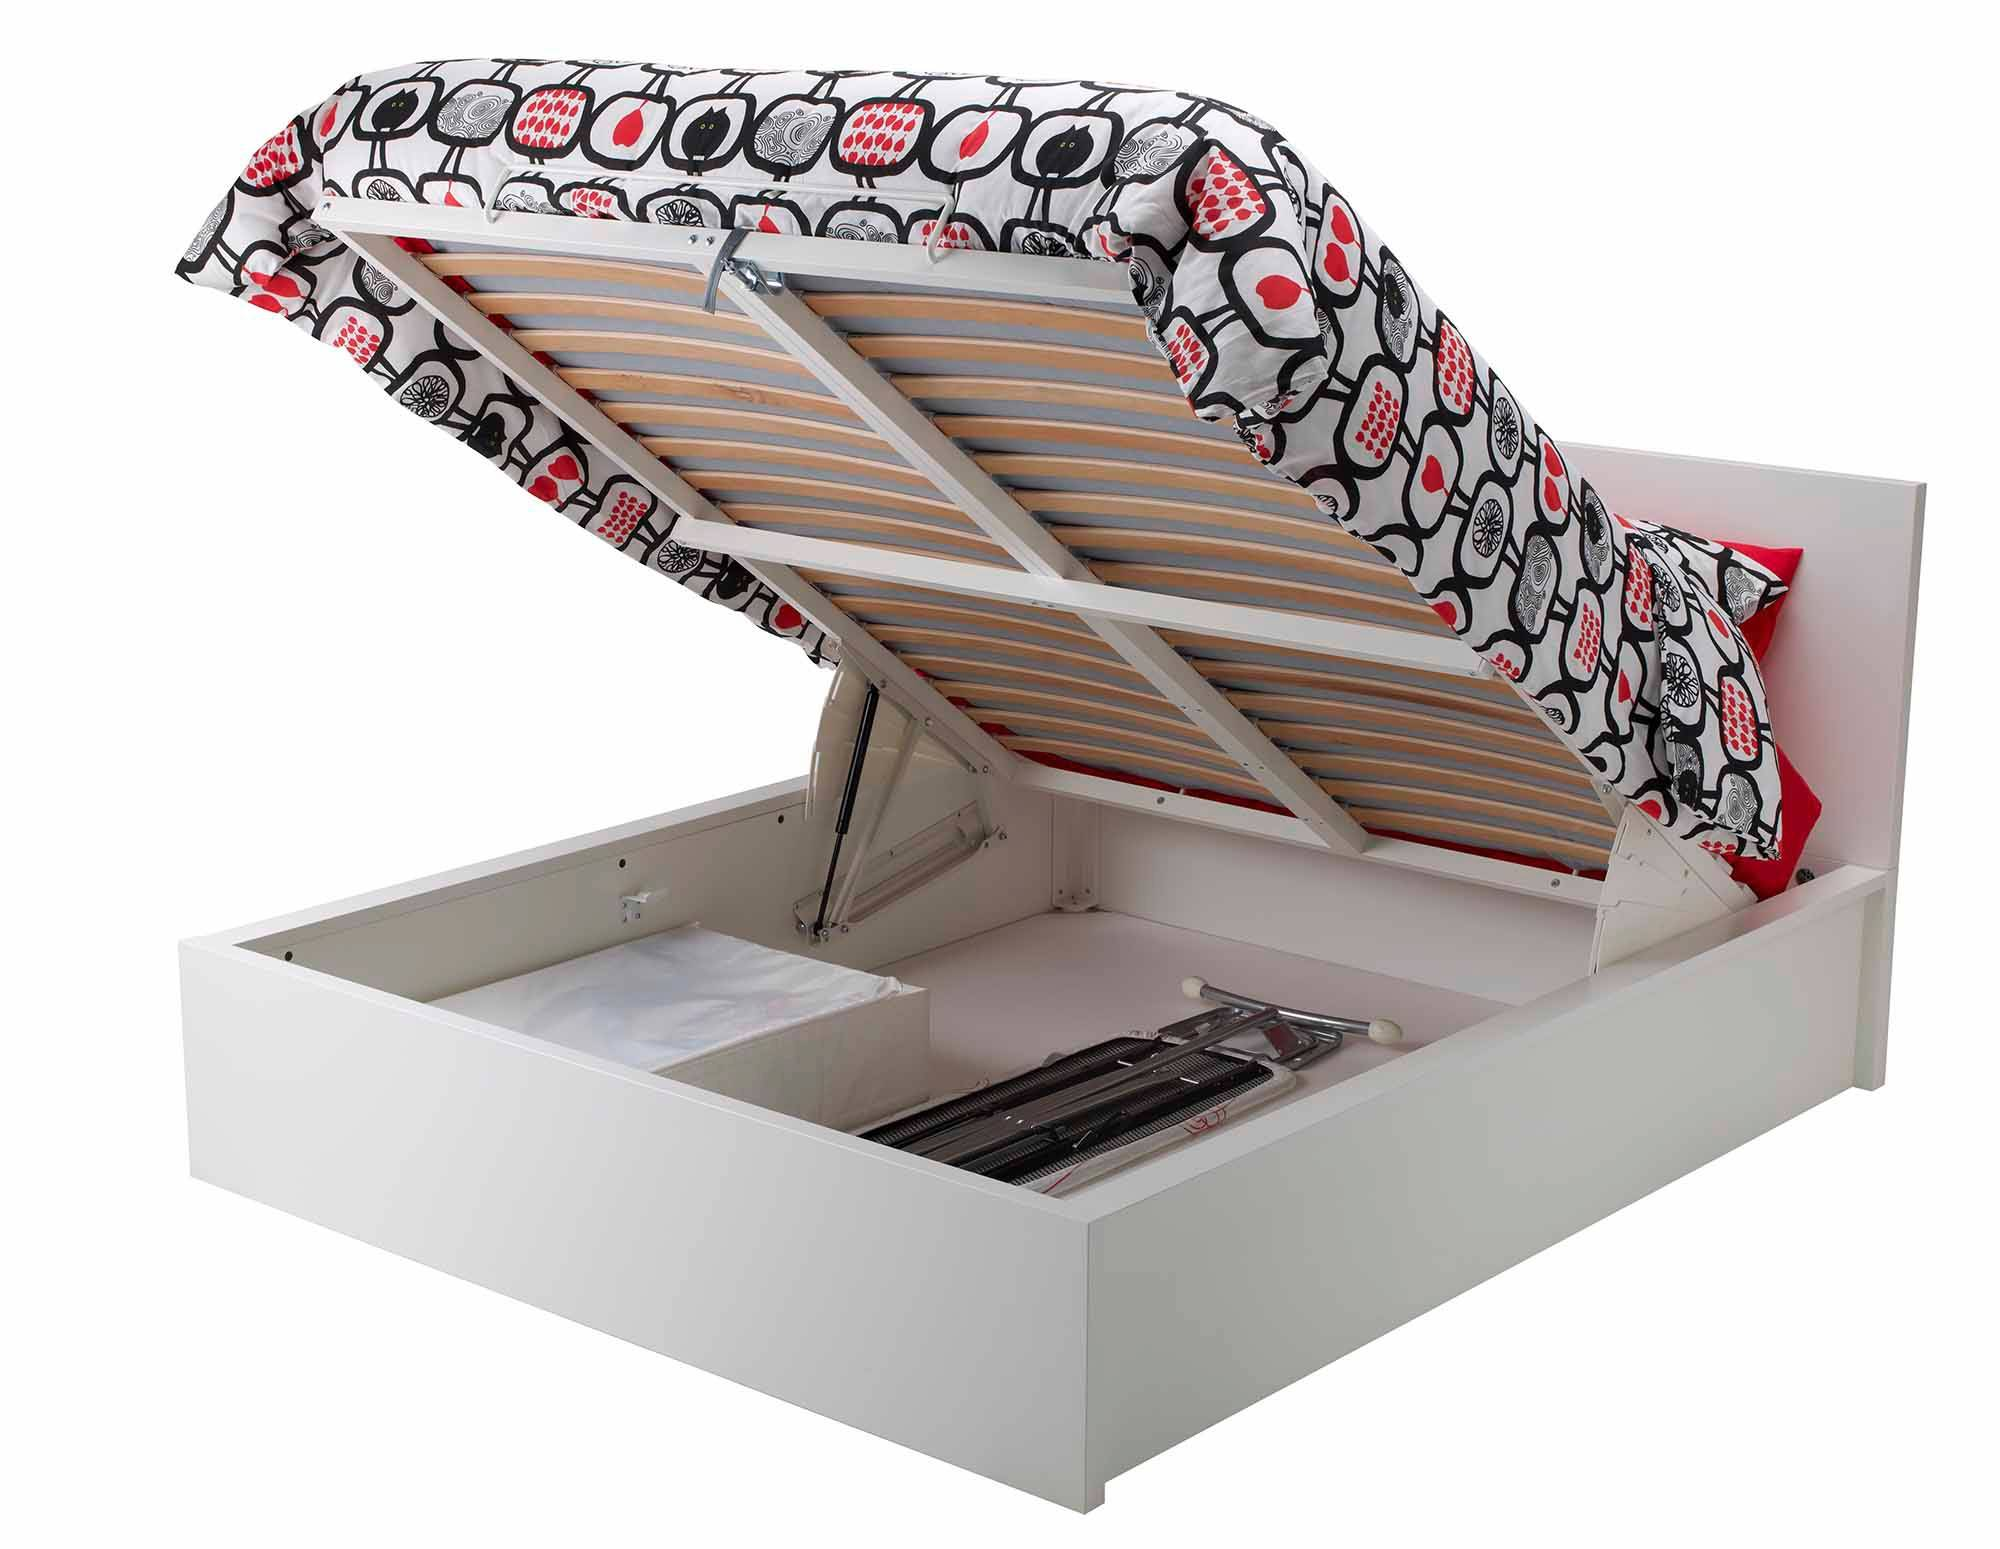 A storage bed from IKEA's popular Malm line, which lifts to open rather than having drawers. The store's carries two lightweight storage beds that cost between $250 and $500.